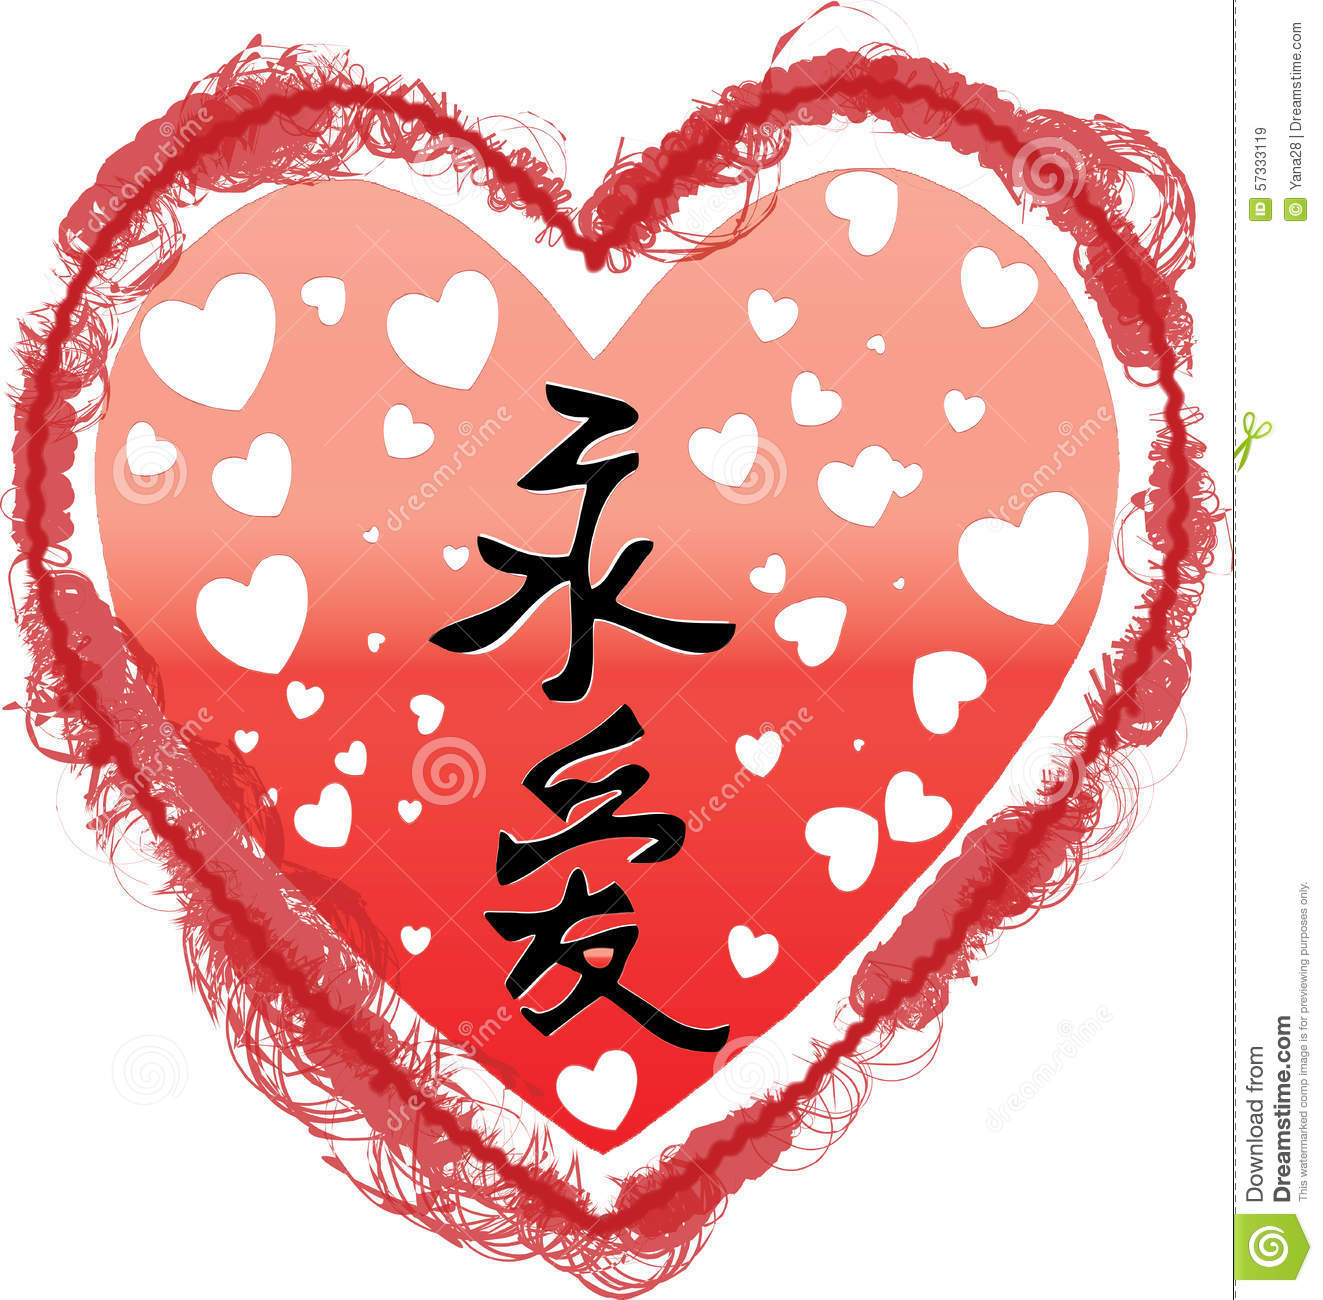 Heart You Re Amazing: Lucky Feng Shui Chinese Symbol Of Eternal Love Stock